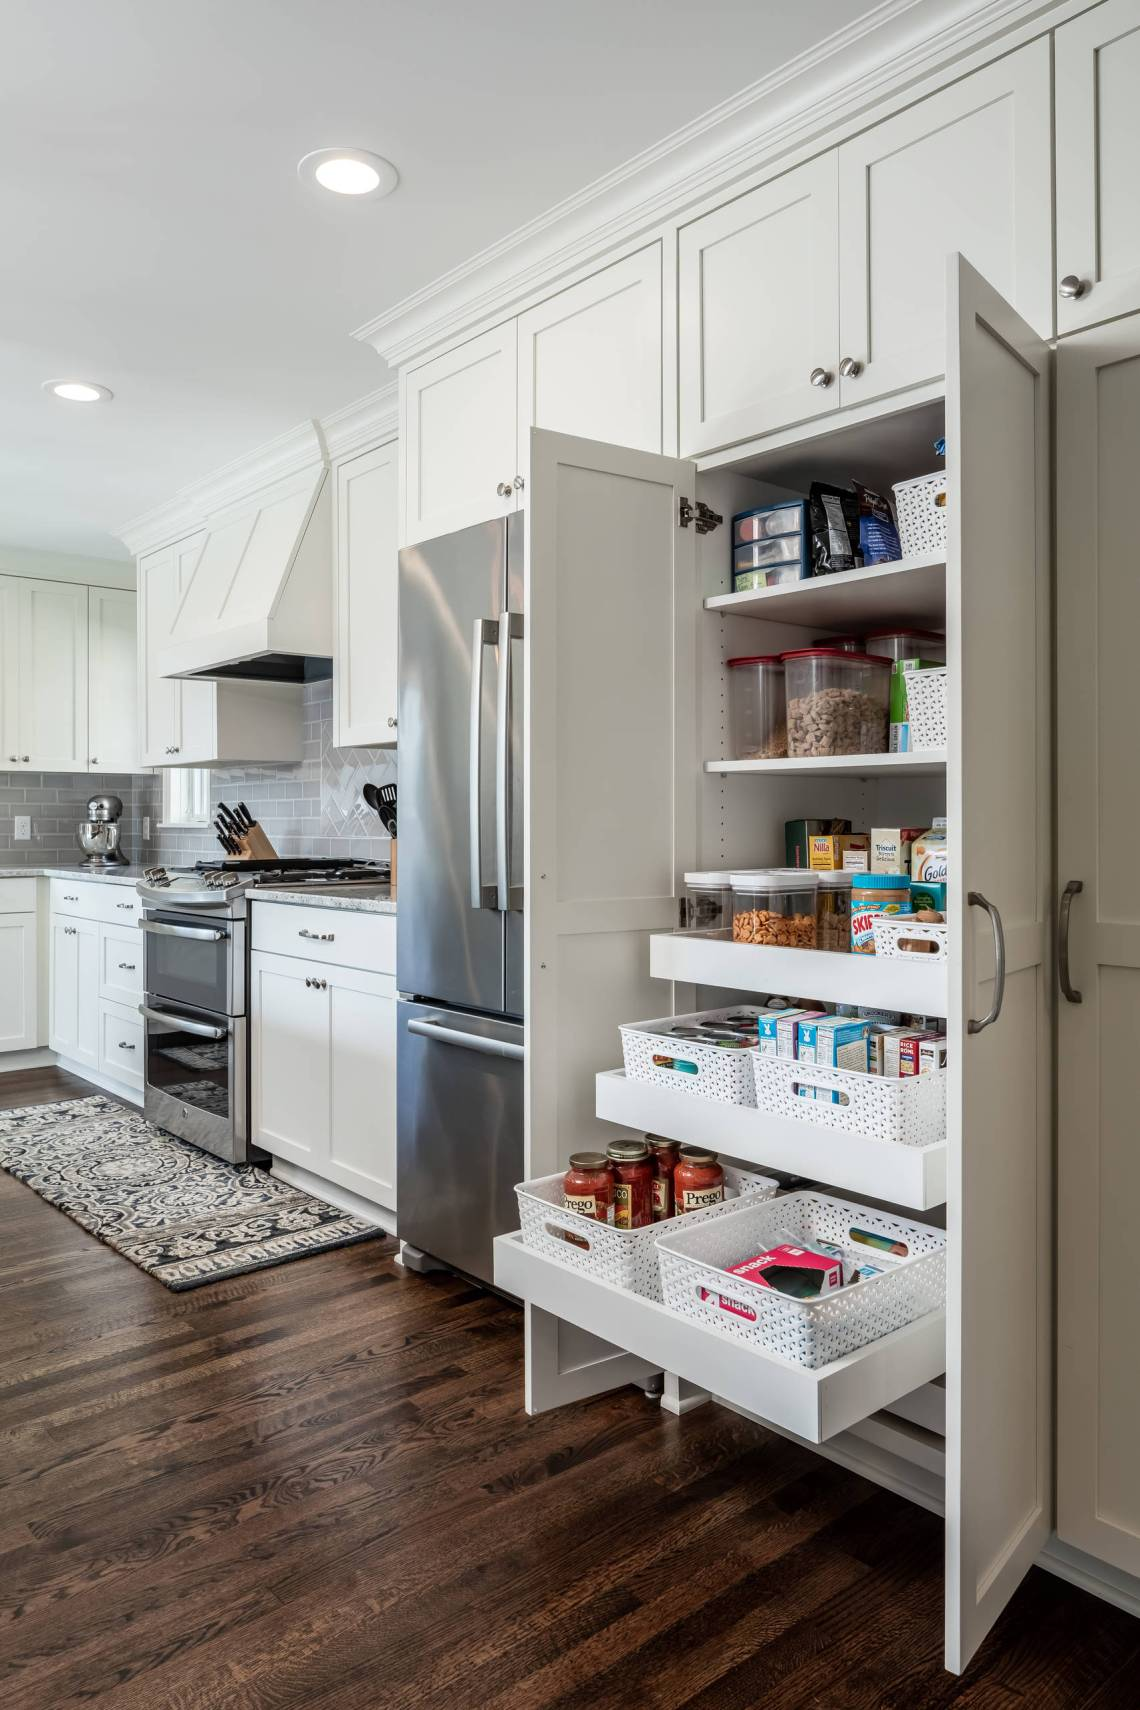 75 Beautiful Kitchen Pantry Pictures Ideas August 2021 Houzz